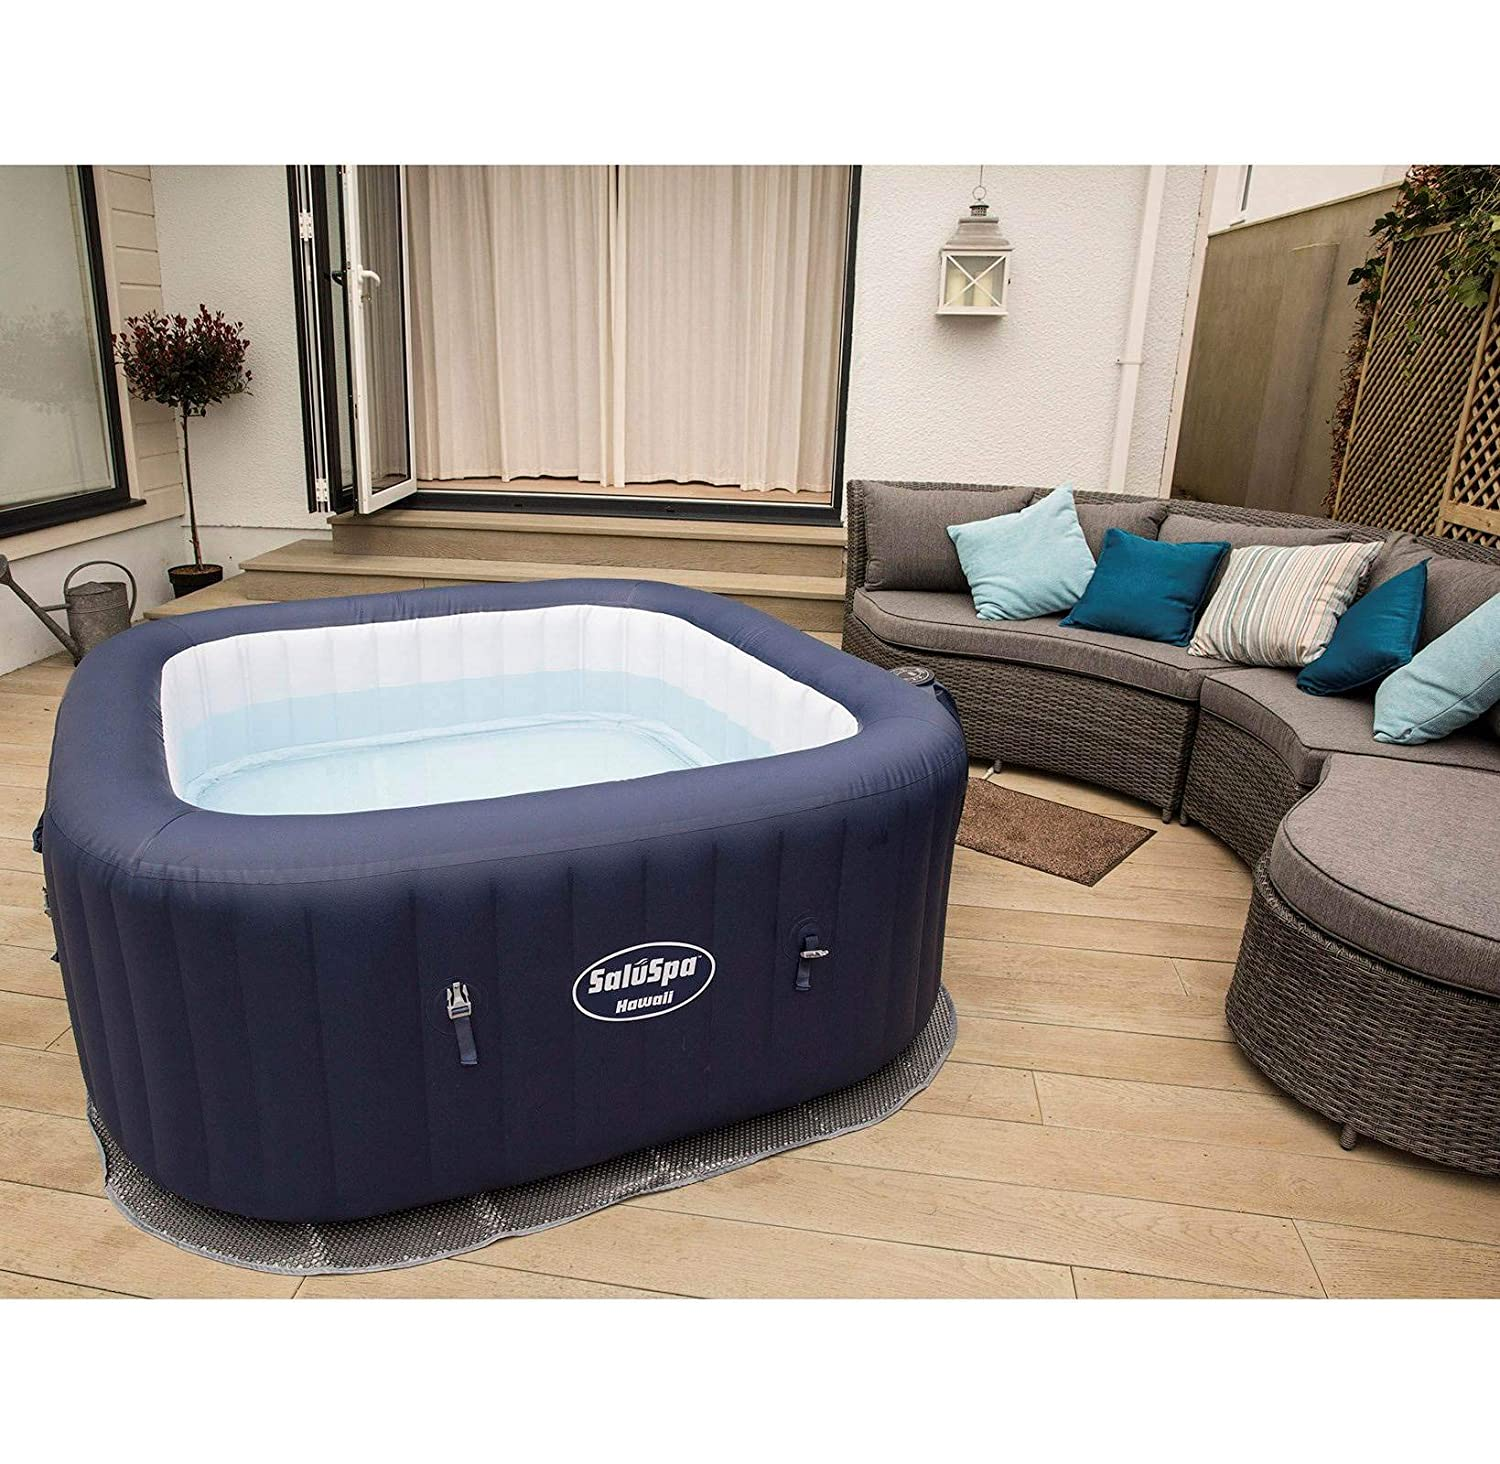 Amazon.com: Bestway 54155E Hawaii Air Jet - Spa hinchable ...